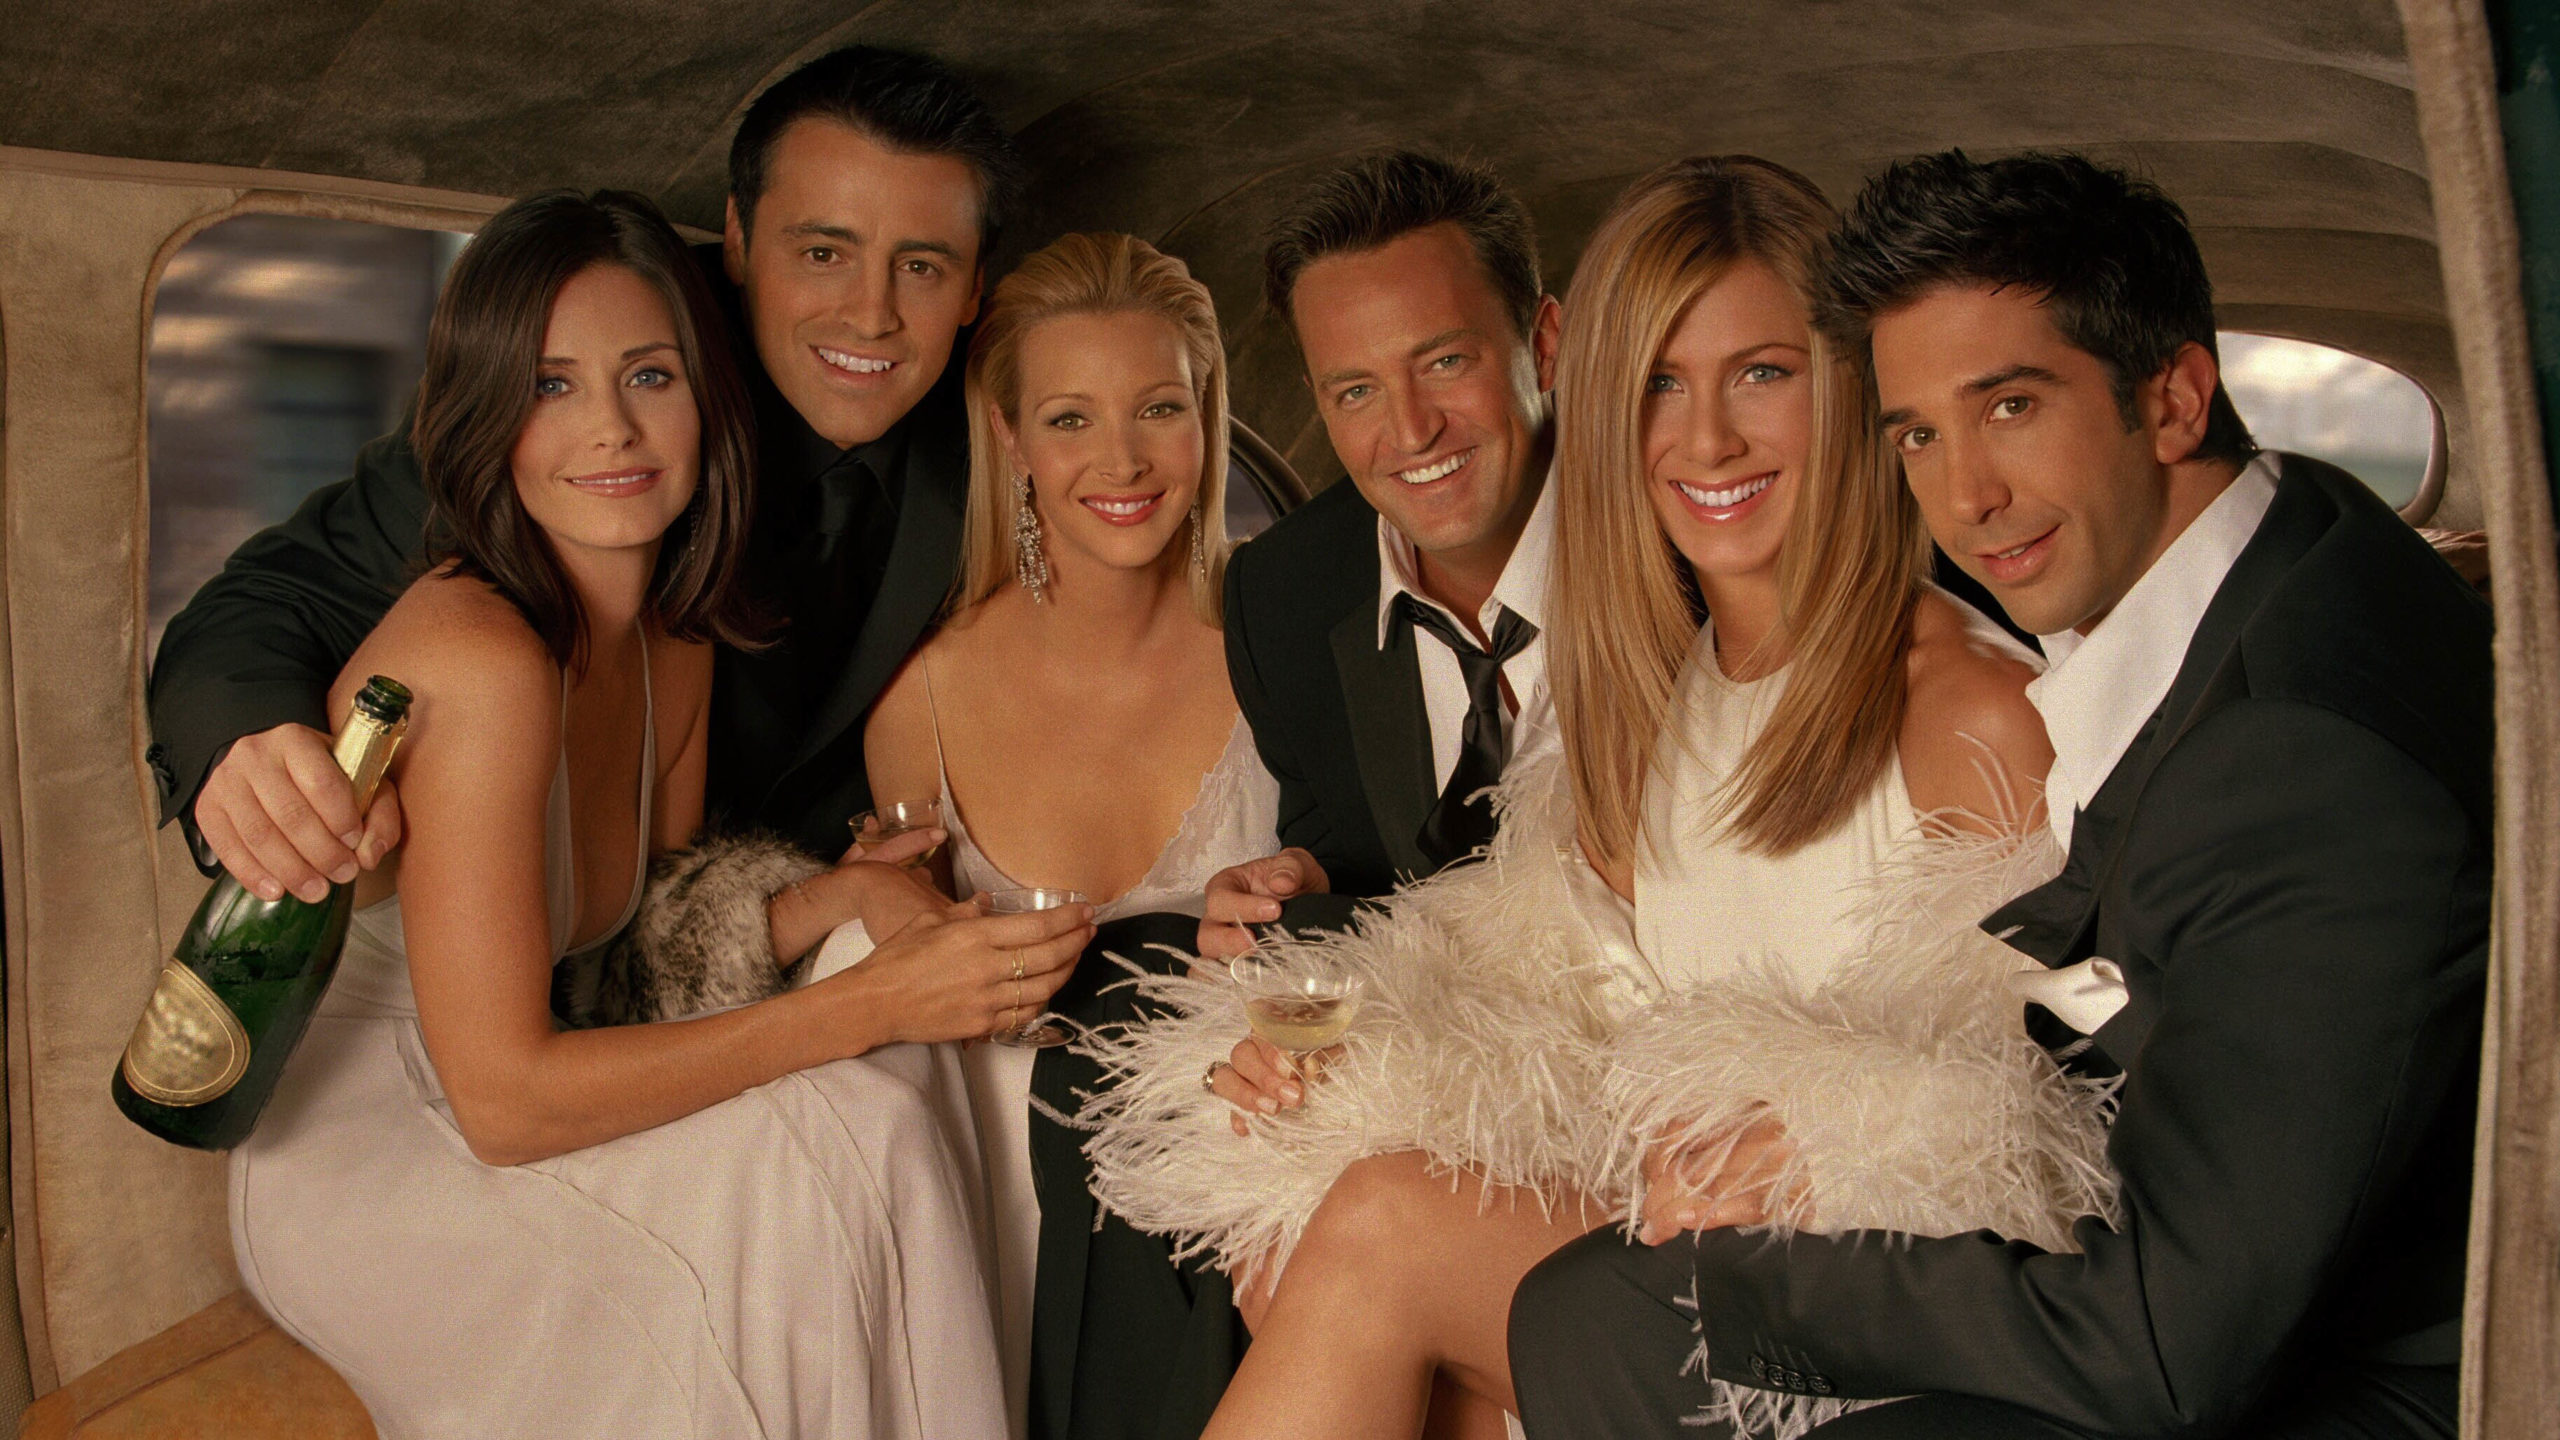 The main cast of the TV show, Friends.